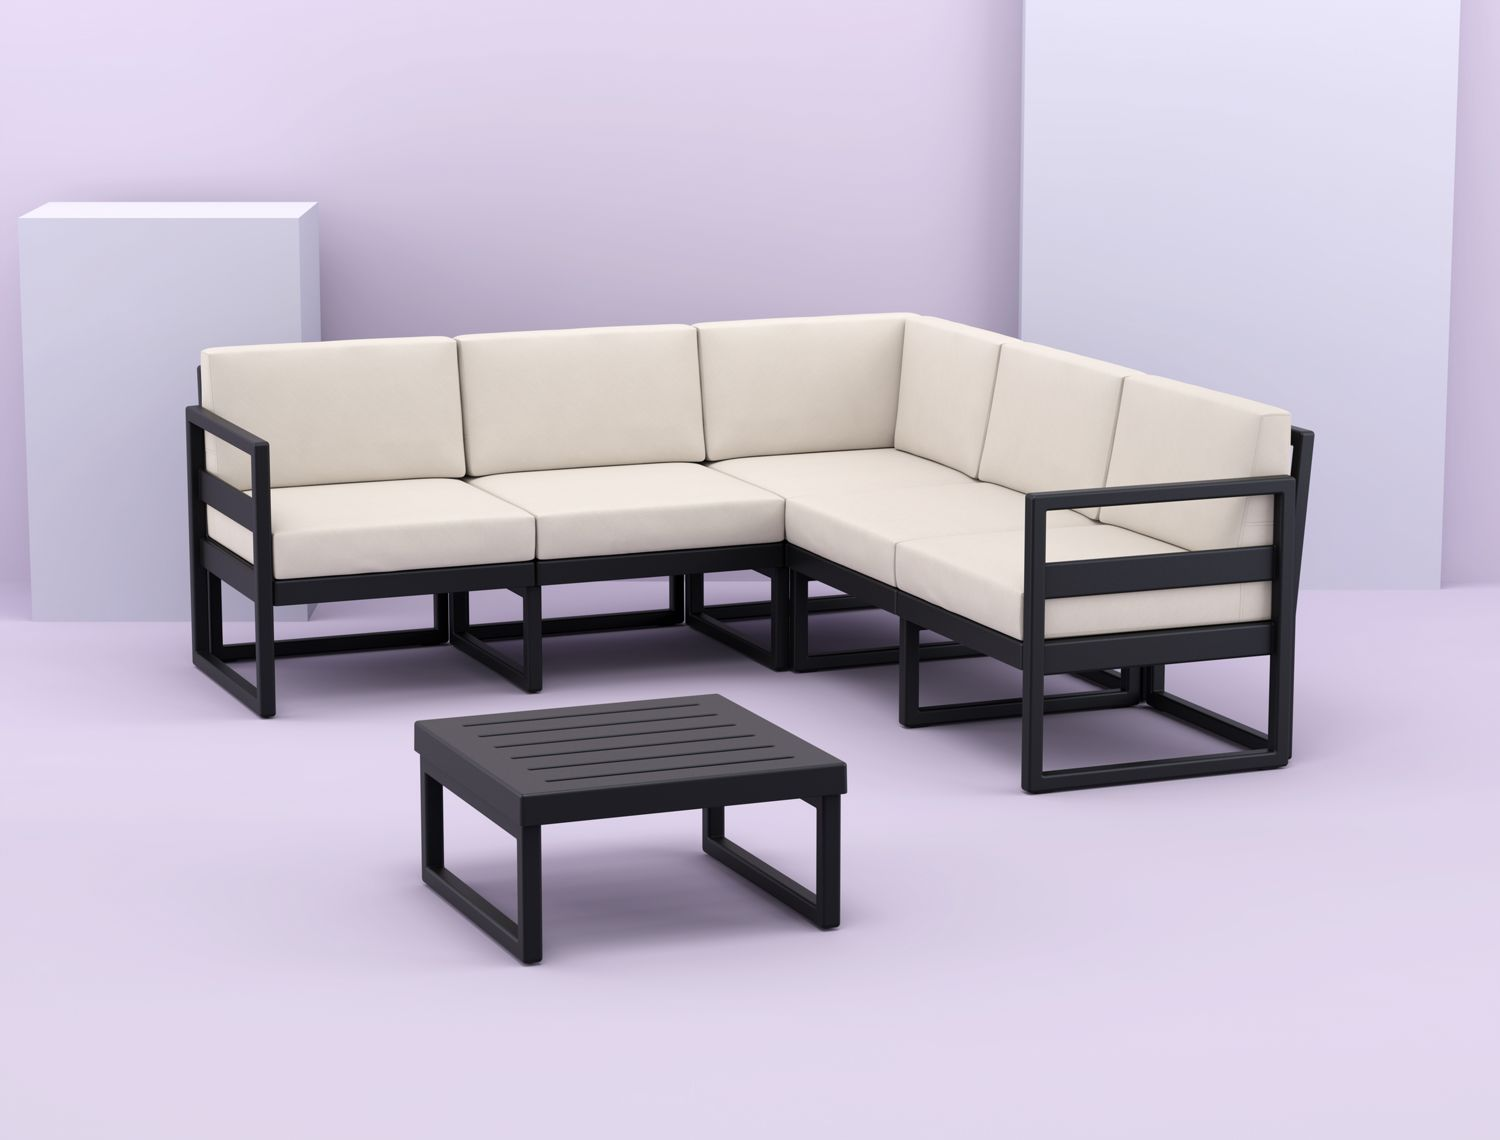 Mykonos Corner Sectional 5 Person Lounge Set White with Sunbrella Natural Cushion ISP134-WHI-CNA - 1